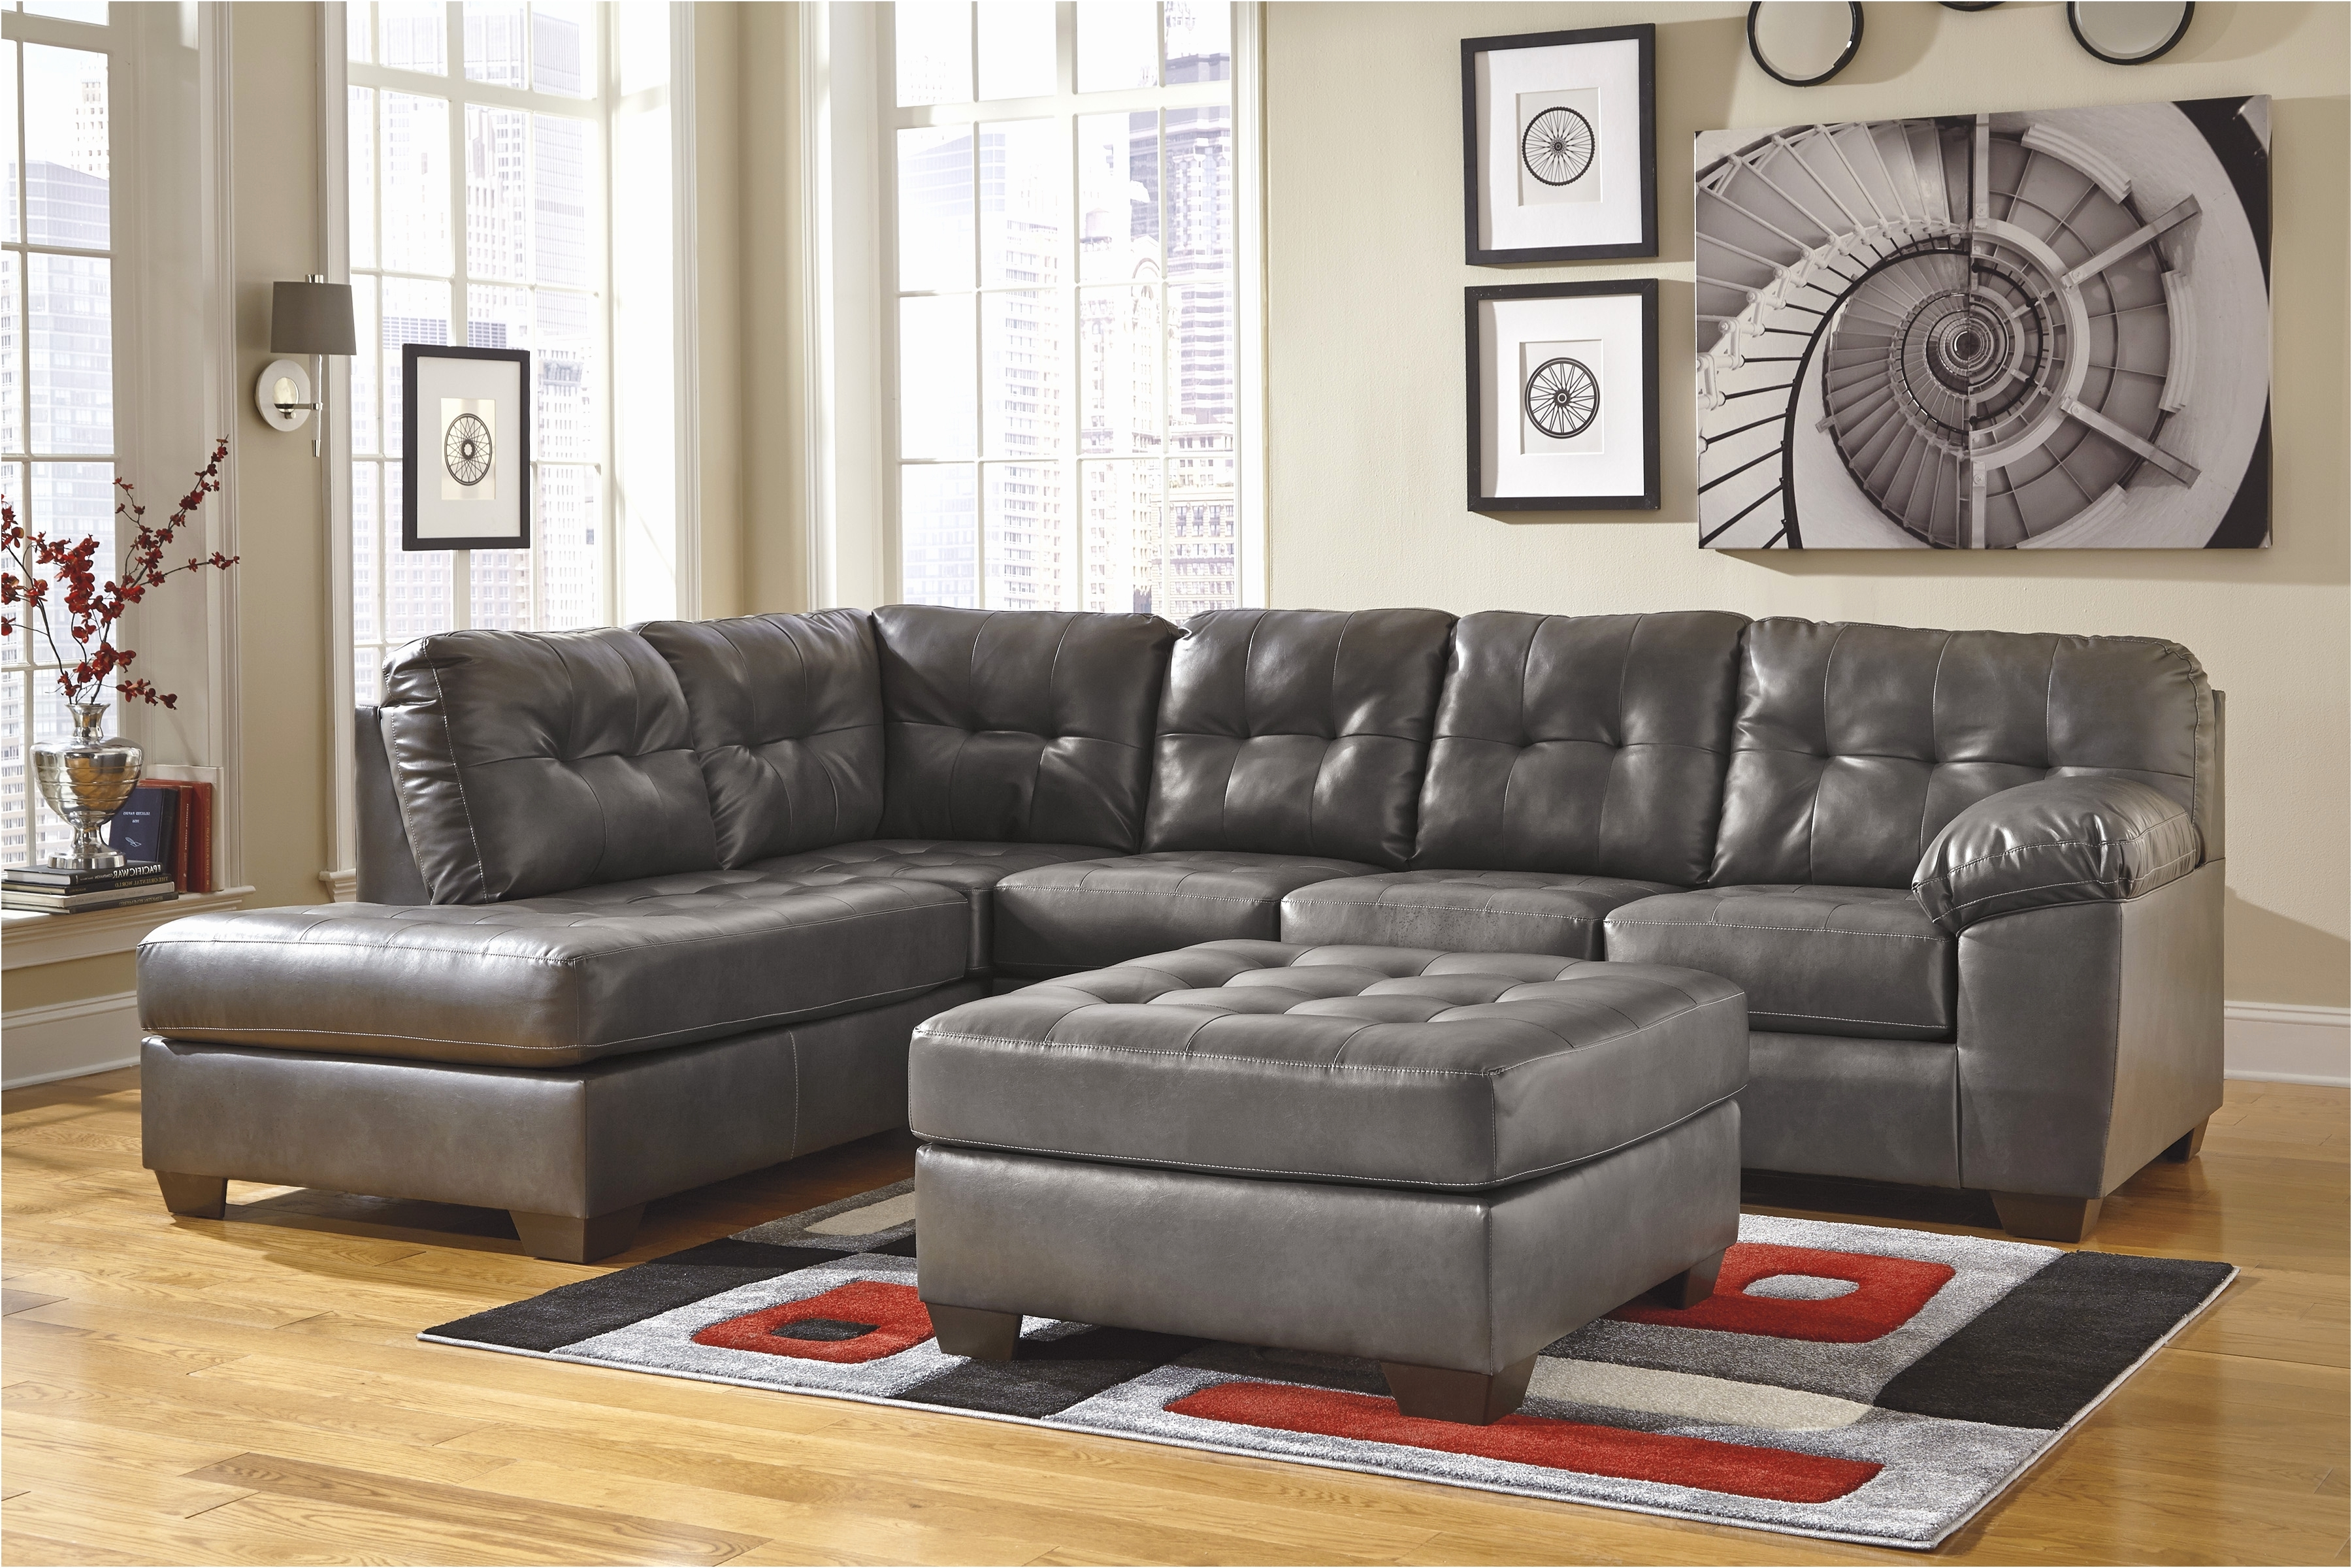 Popular Faux Leather Sectional Sofas With Uncategorized (View 15 of 20)